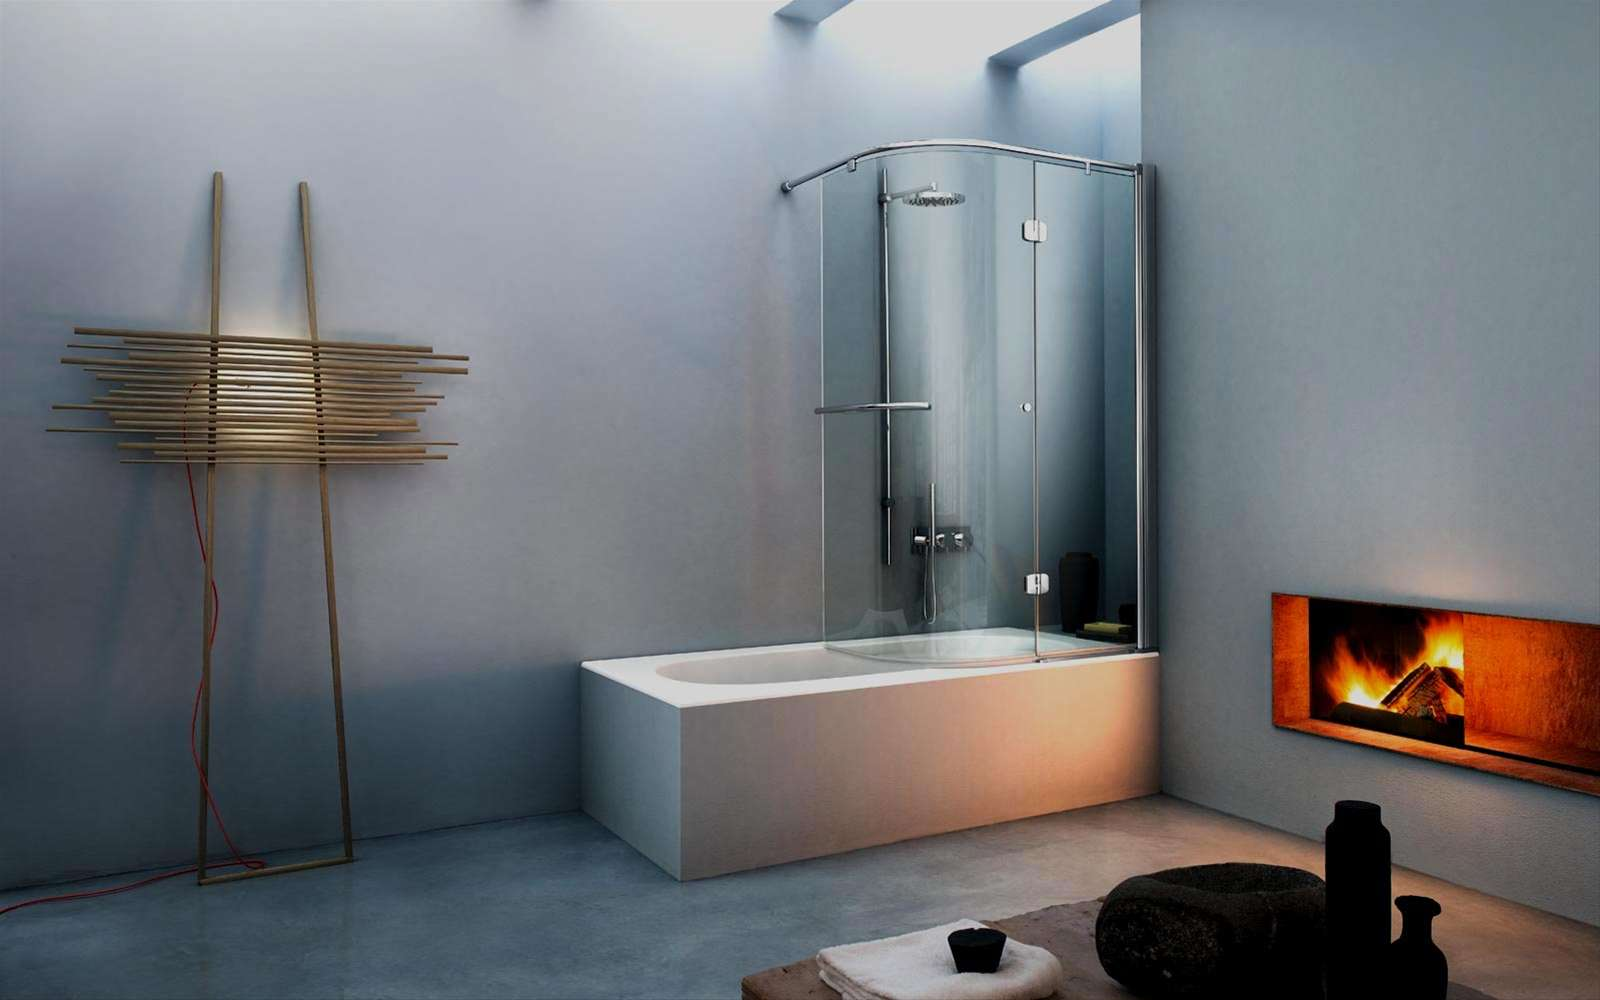 Bathscreens | bathscreens